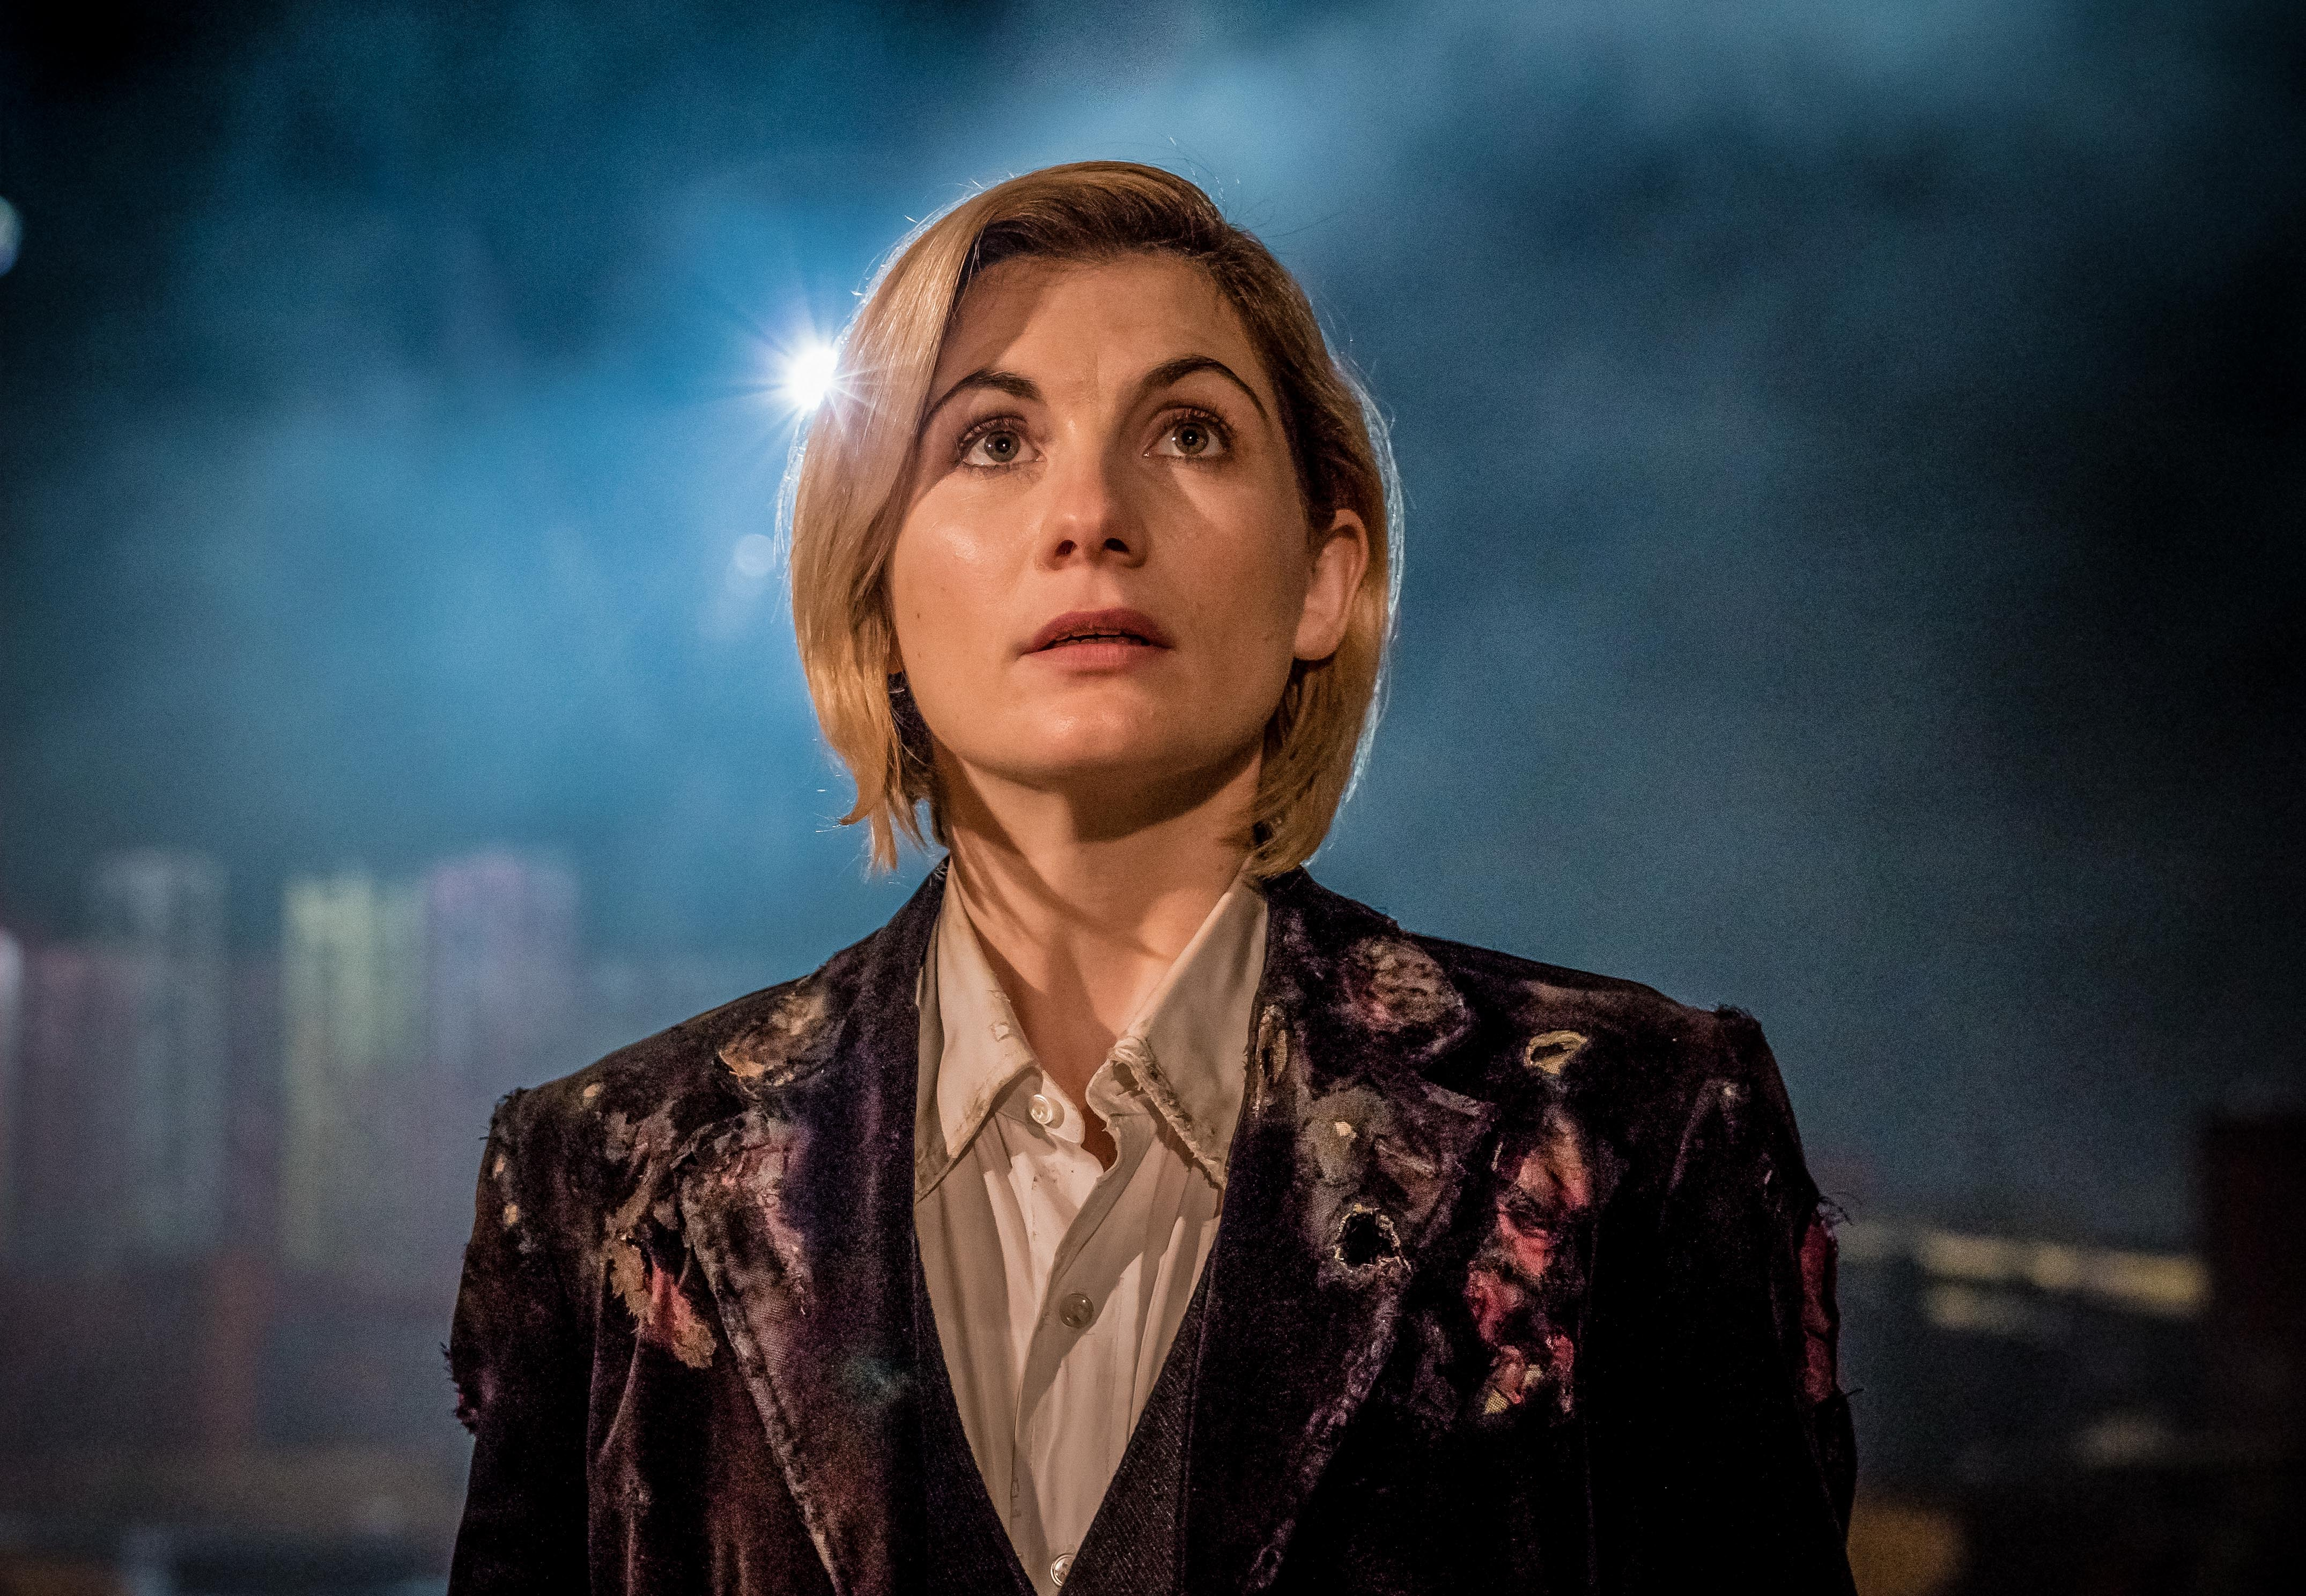 Doctor Who Christmas Specials.Is The Doctor Who Christmas Special On Netflix The